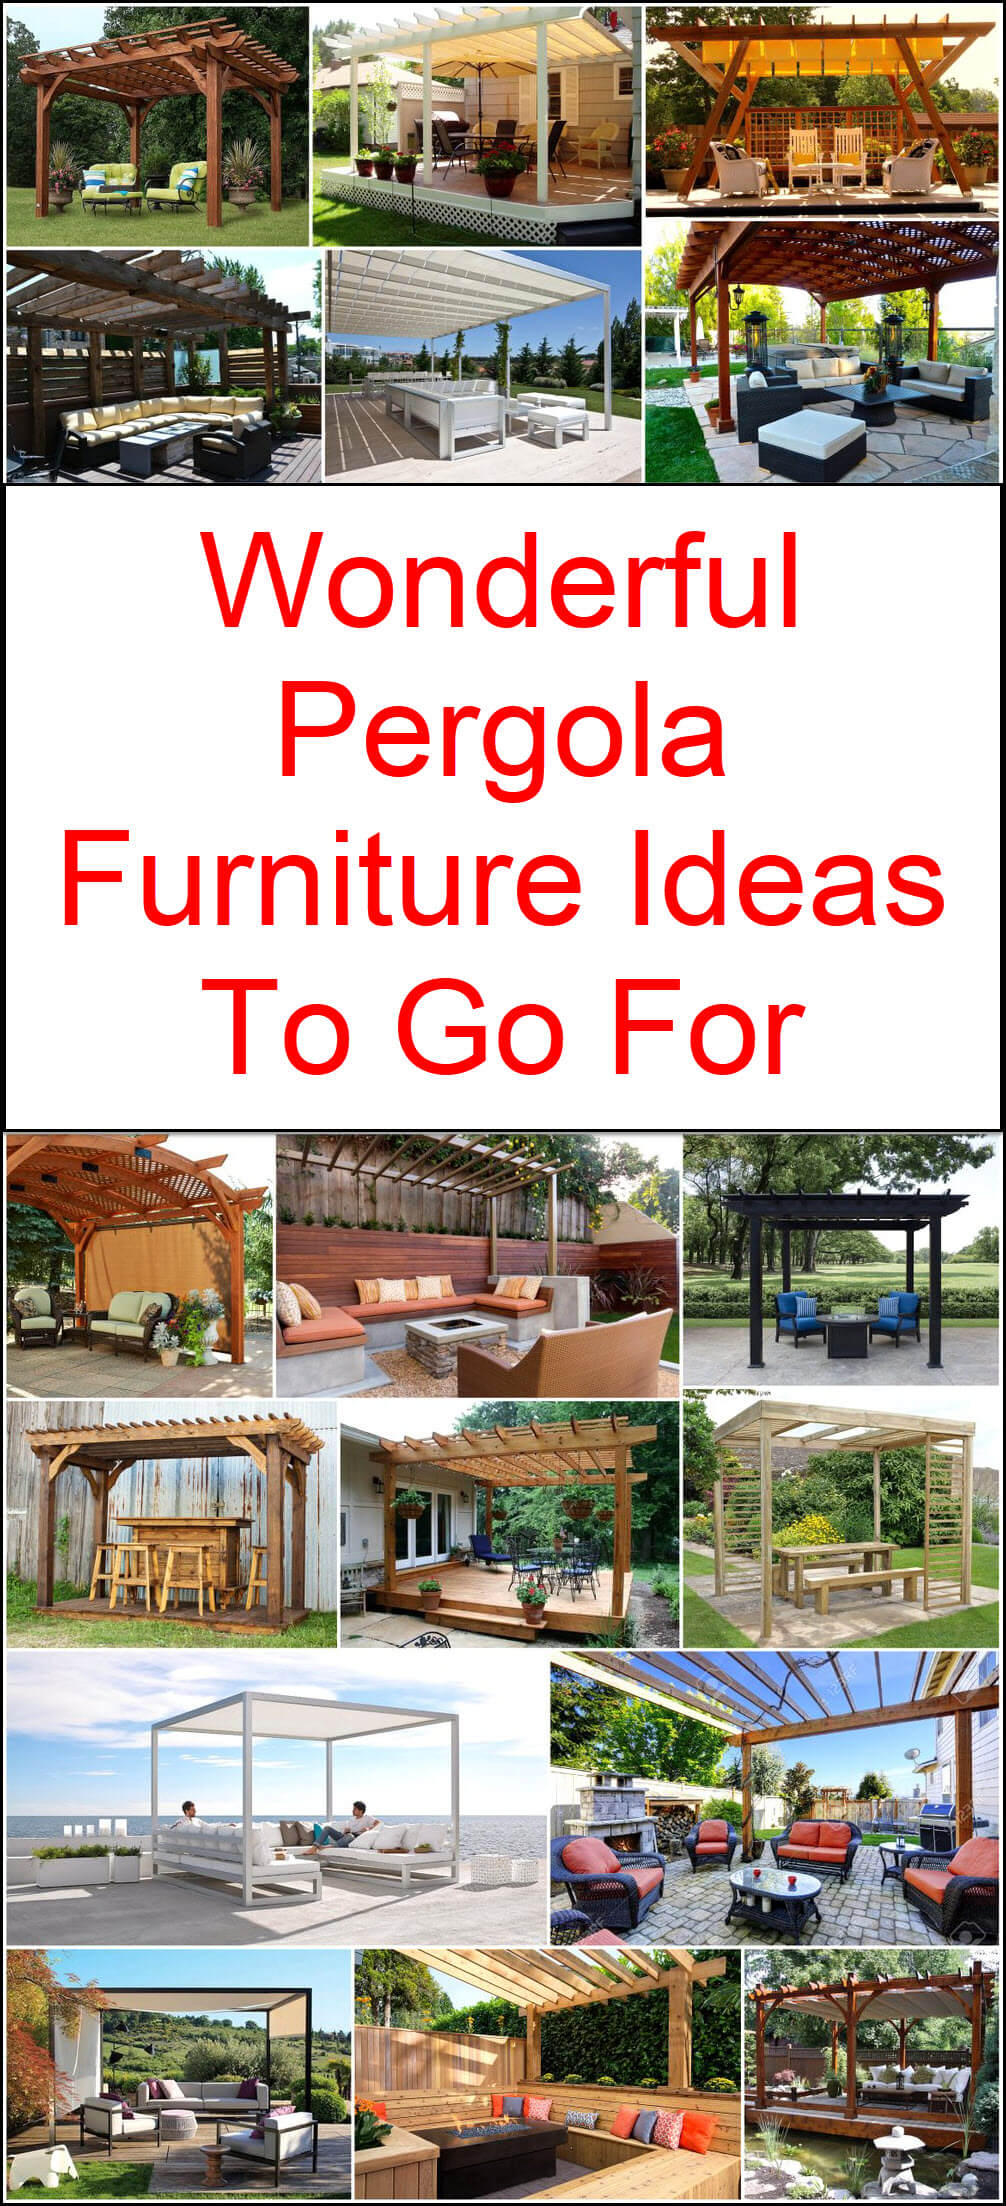 Wonderful Pergola Furniture Ideas To Go For